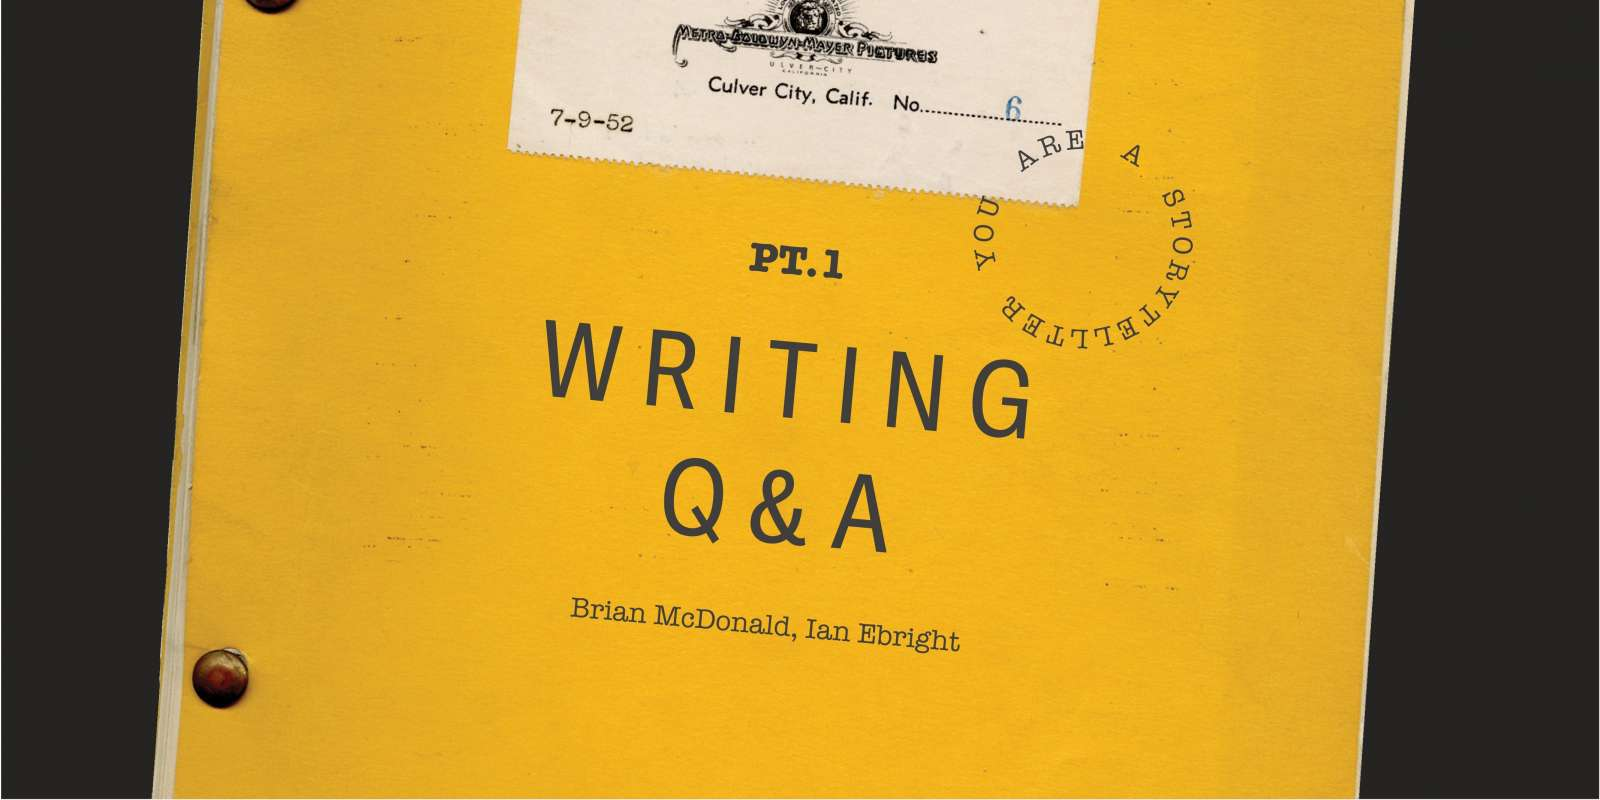 You Are a Storyteller: Writing Q&A Hero Image